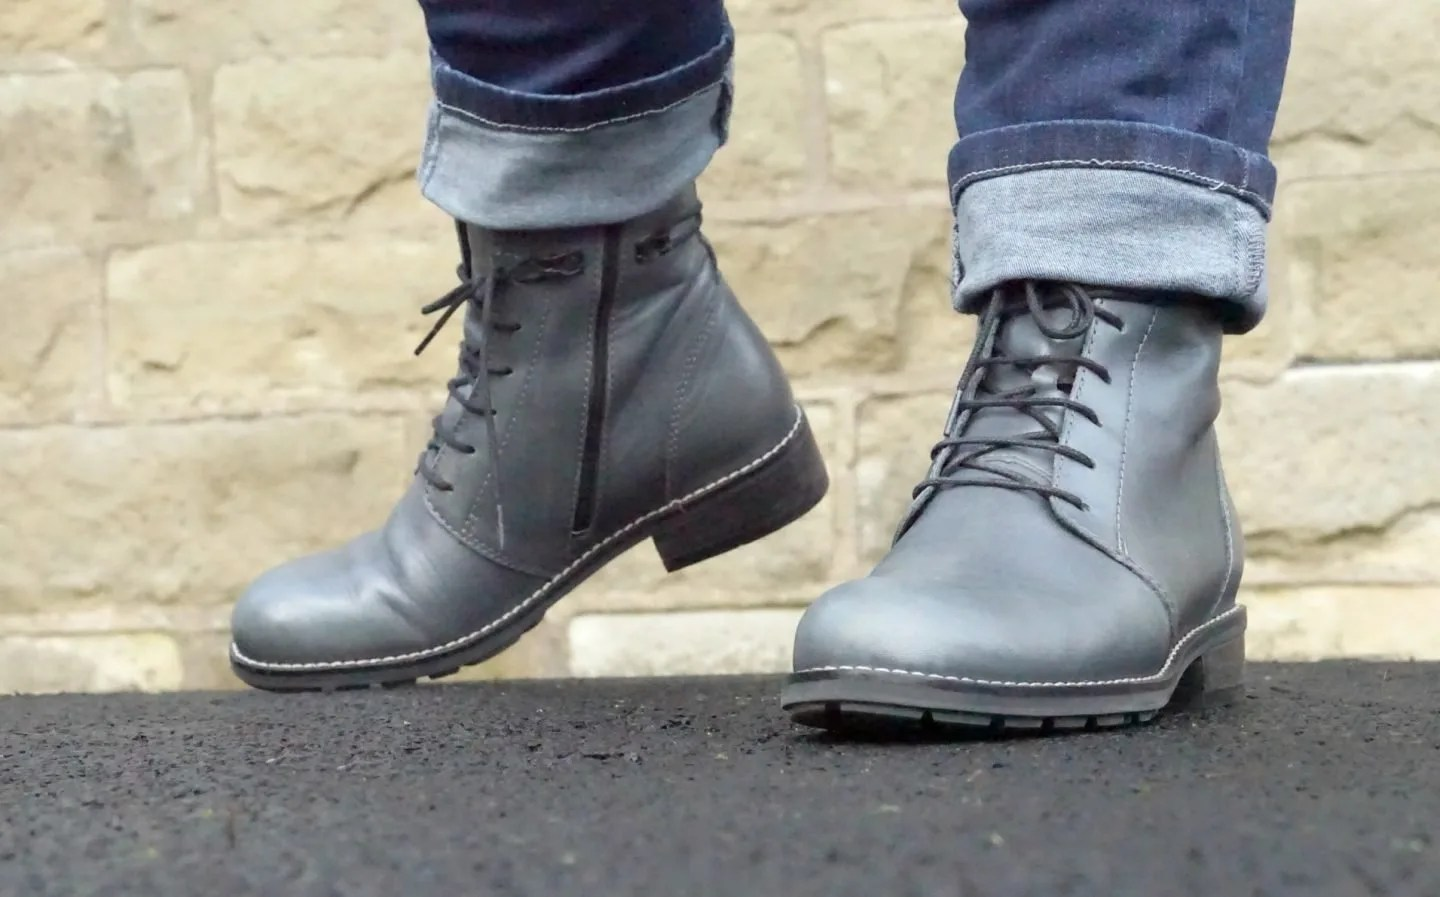 Wolky Boots comfortable boots for city trips